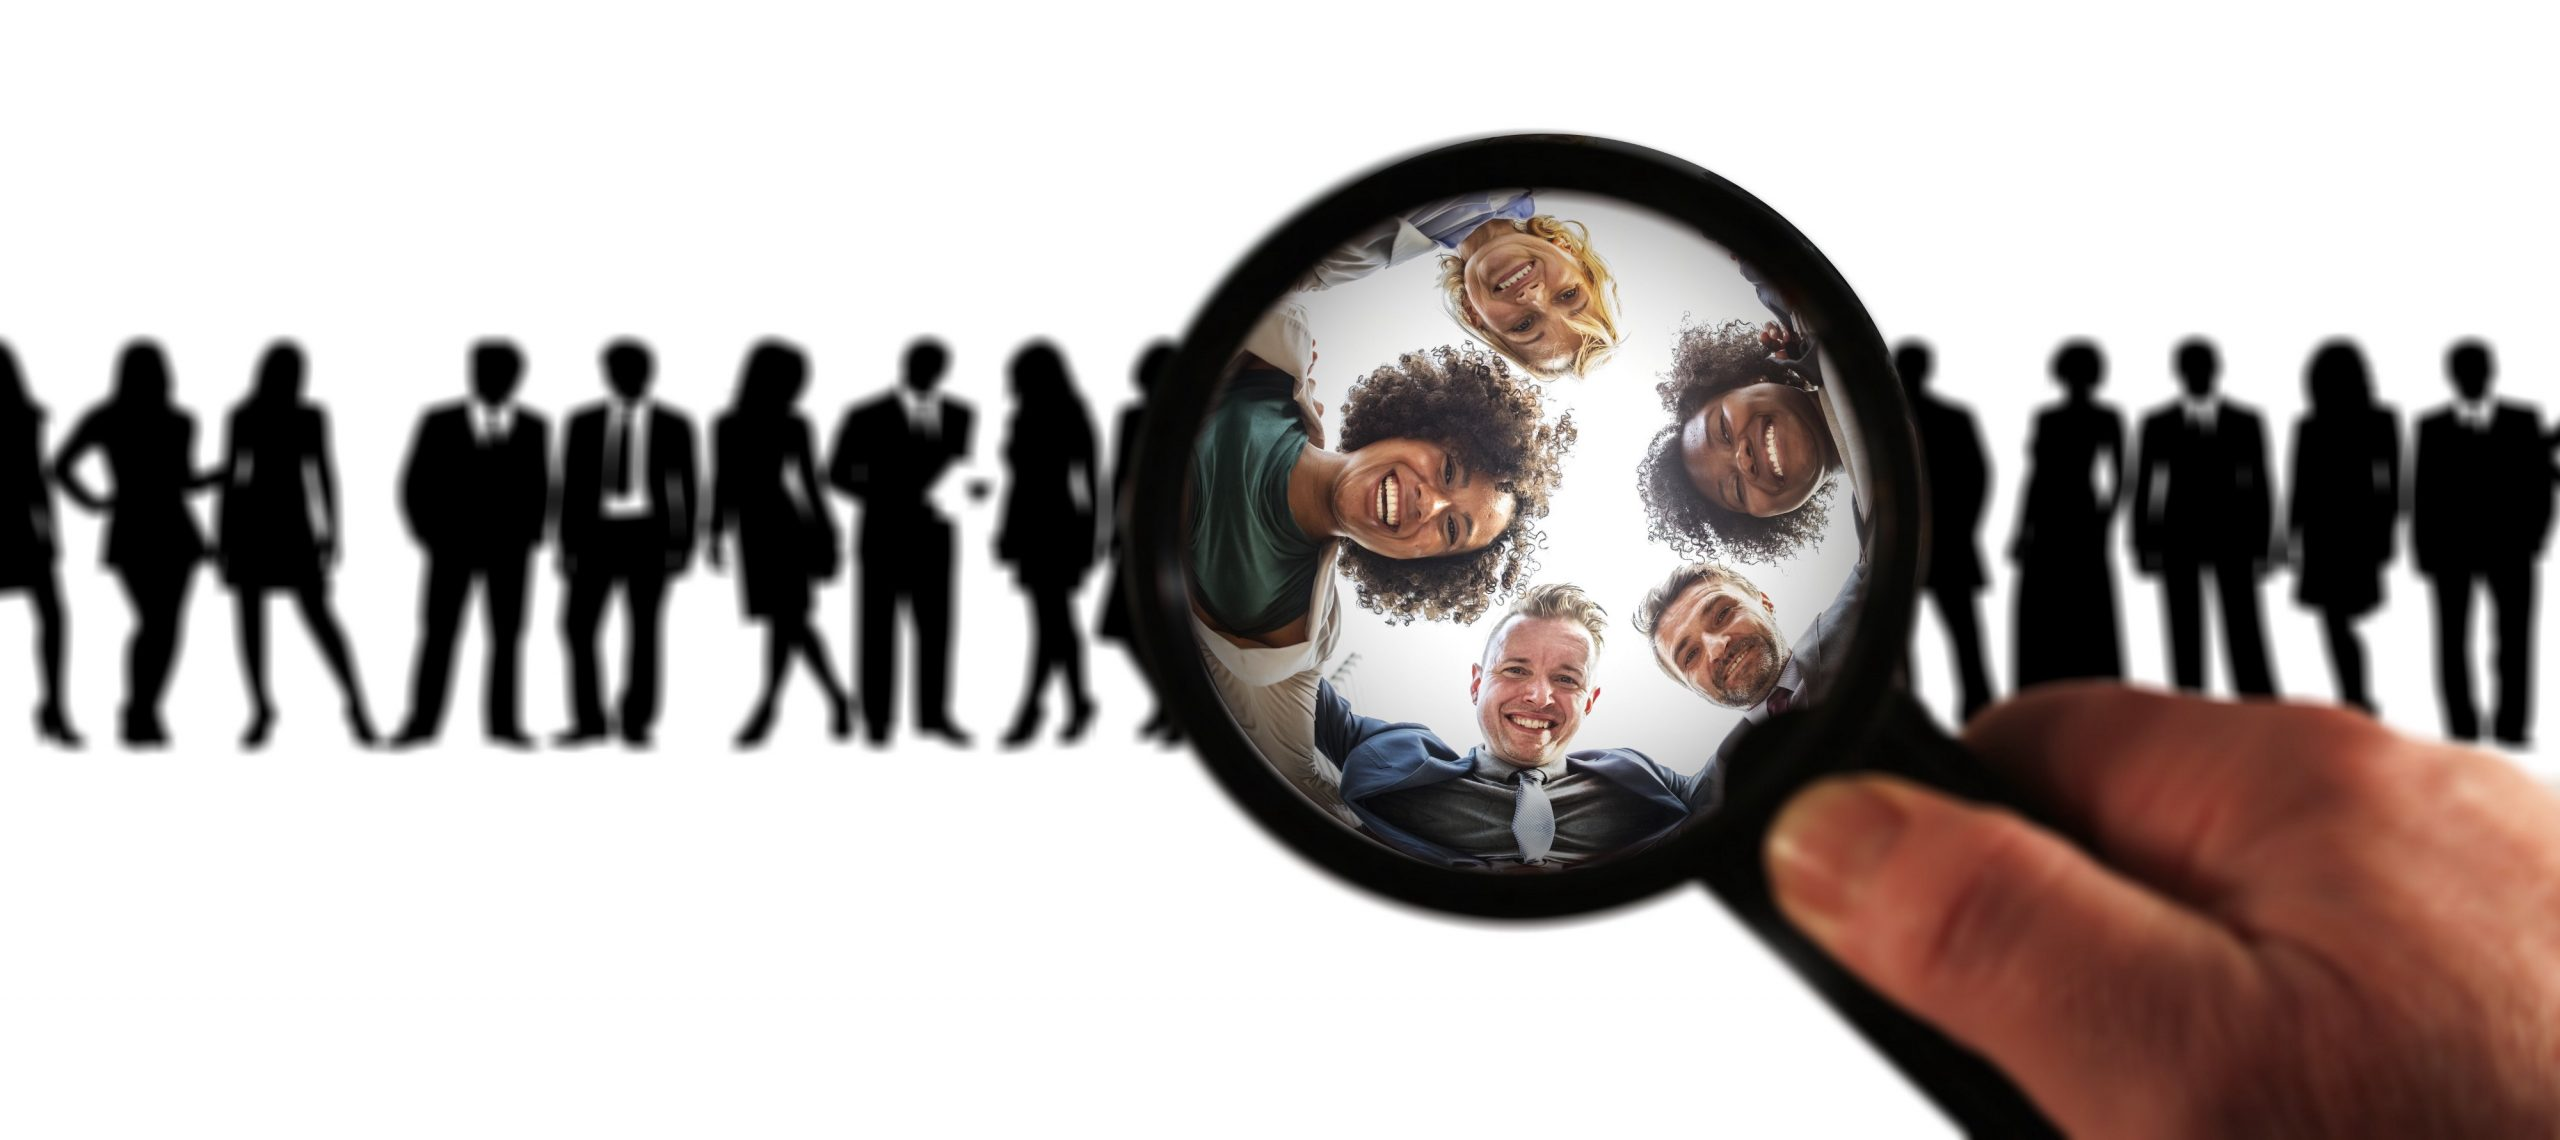 Magnifying glass focusing on faces in a research group